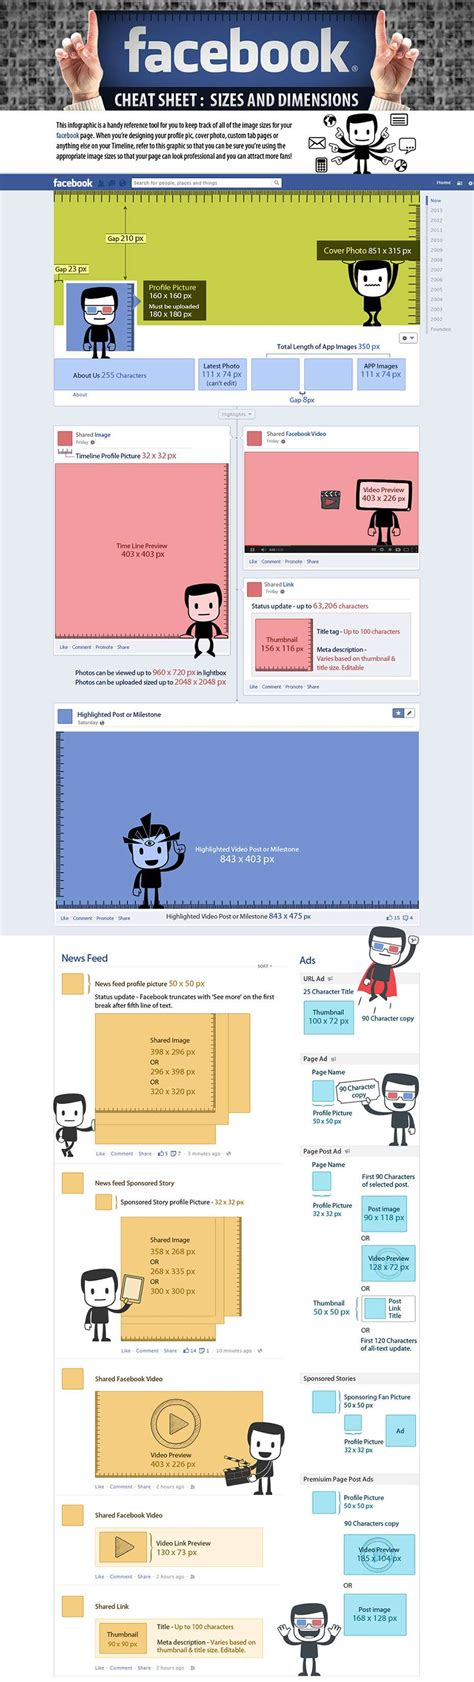 design home cheats facebook facebook image size dimensions cheat sheet freakify com